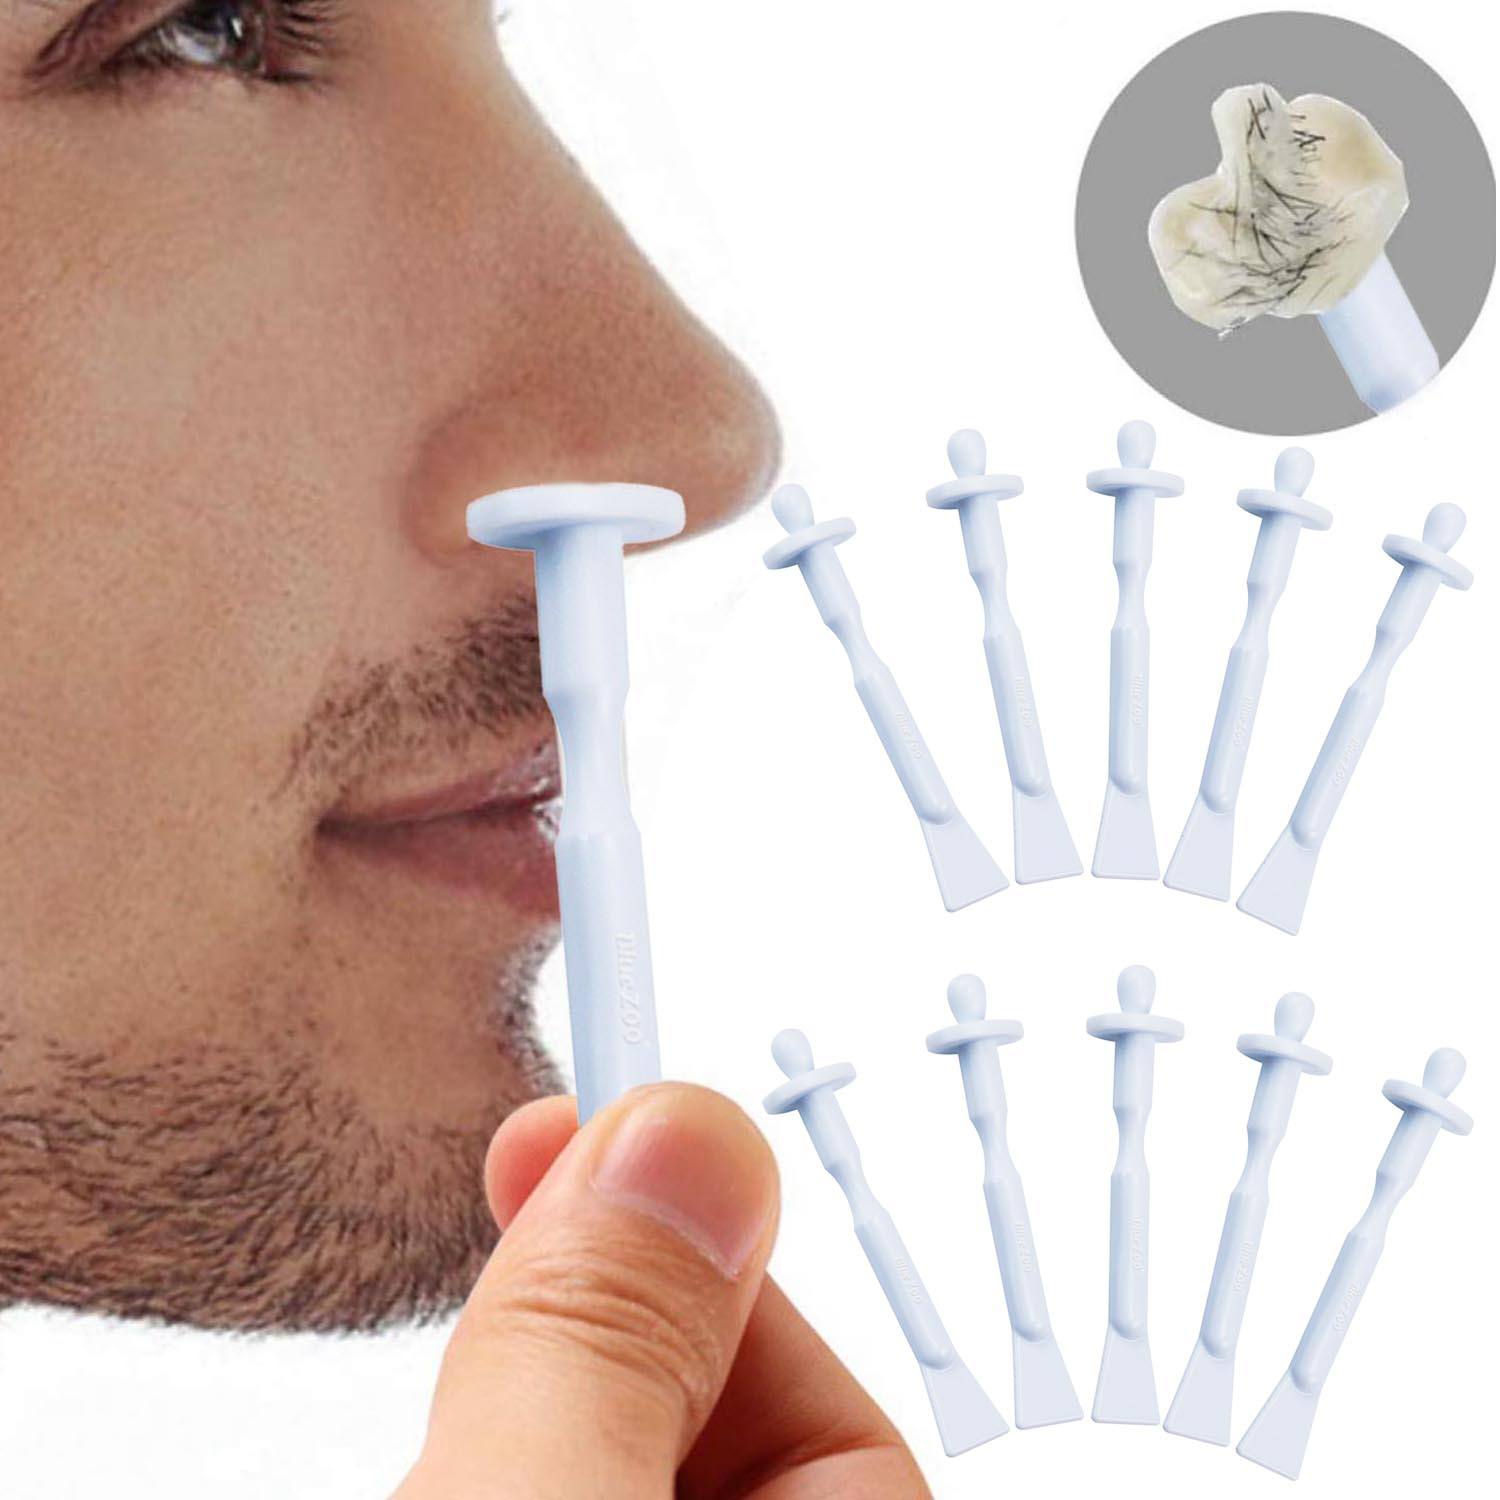 60pcs Disposable Nose Wax Applicator Sticks Spatulas For Nostril Nasal Cleaning Ear Hairs Eyebrow Facial Hair Removal